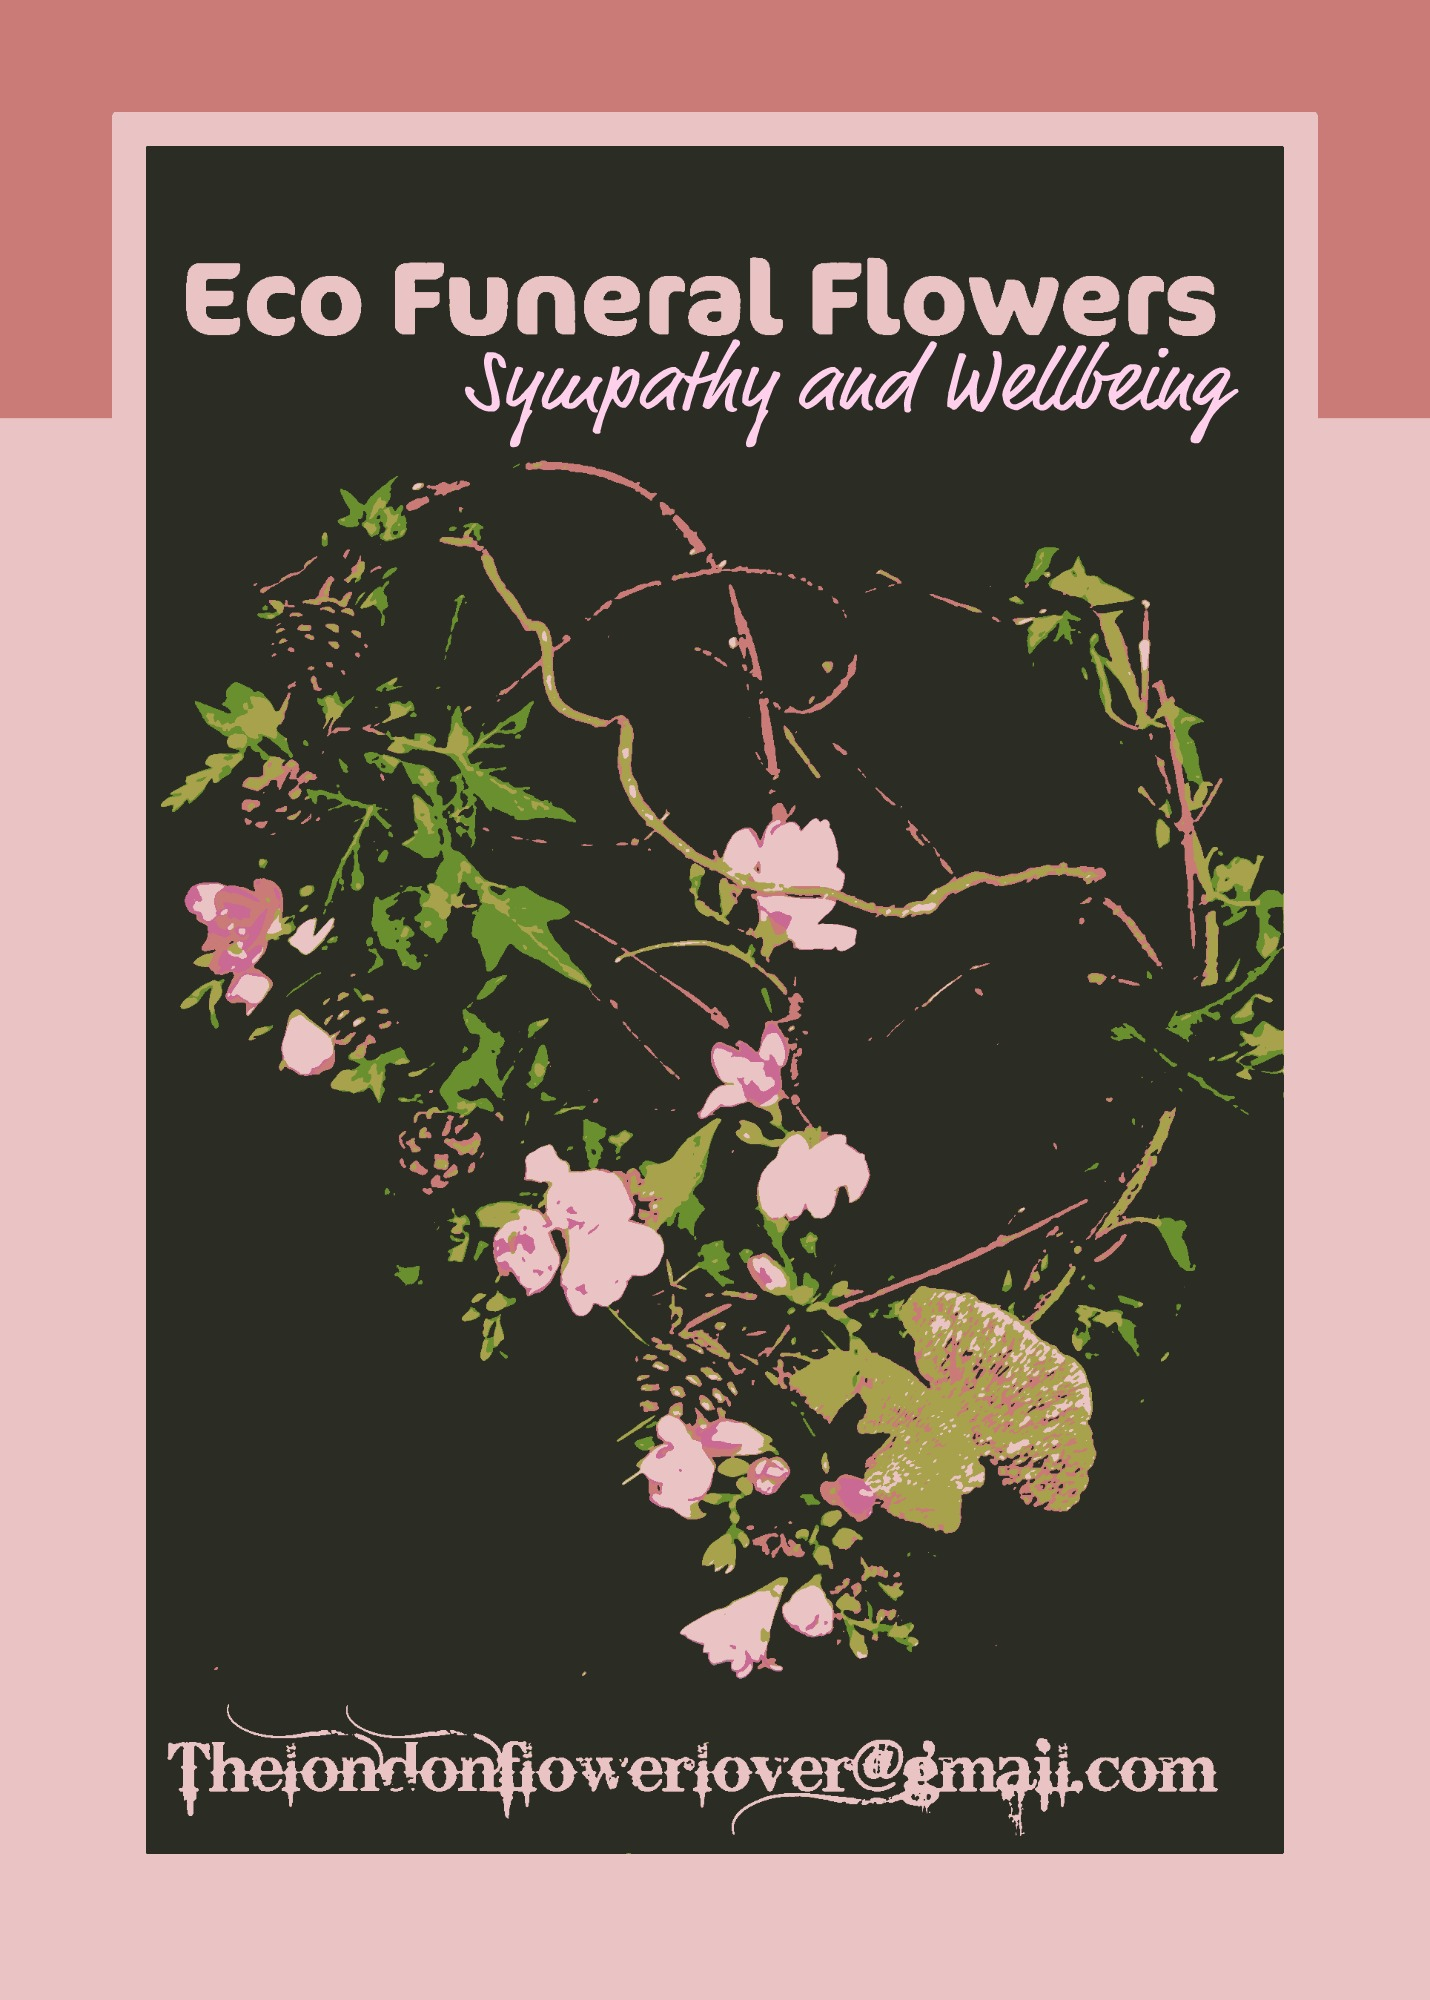 Laughter happiness and flowers at this weeks funeral the london poster eco funeral flowers izmirmasajfo